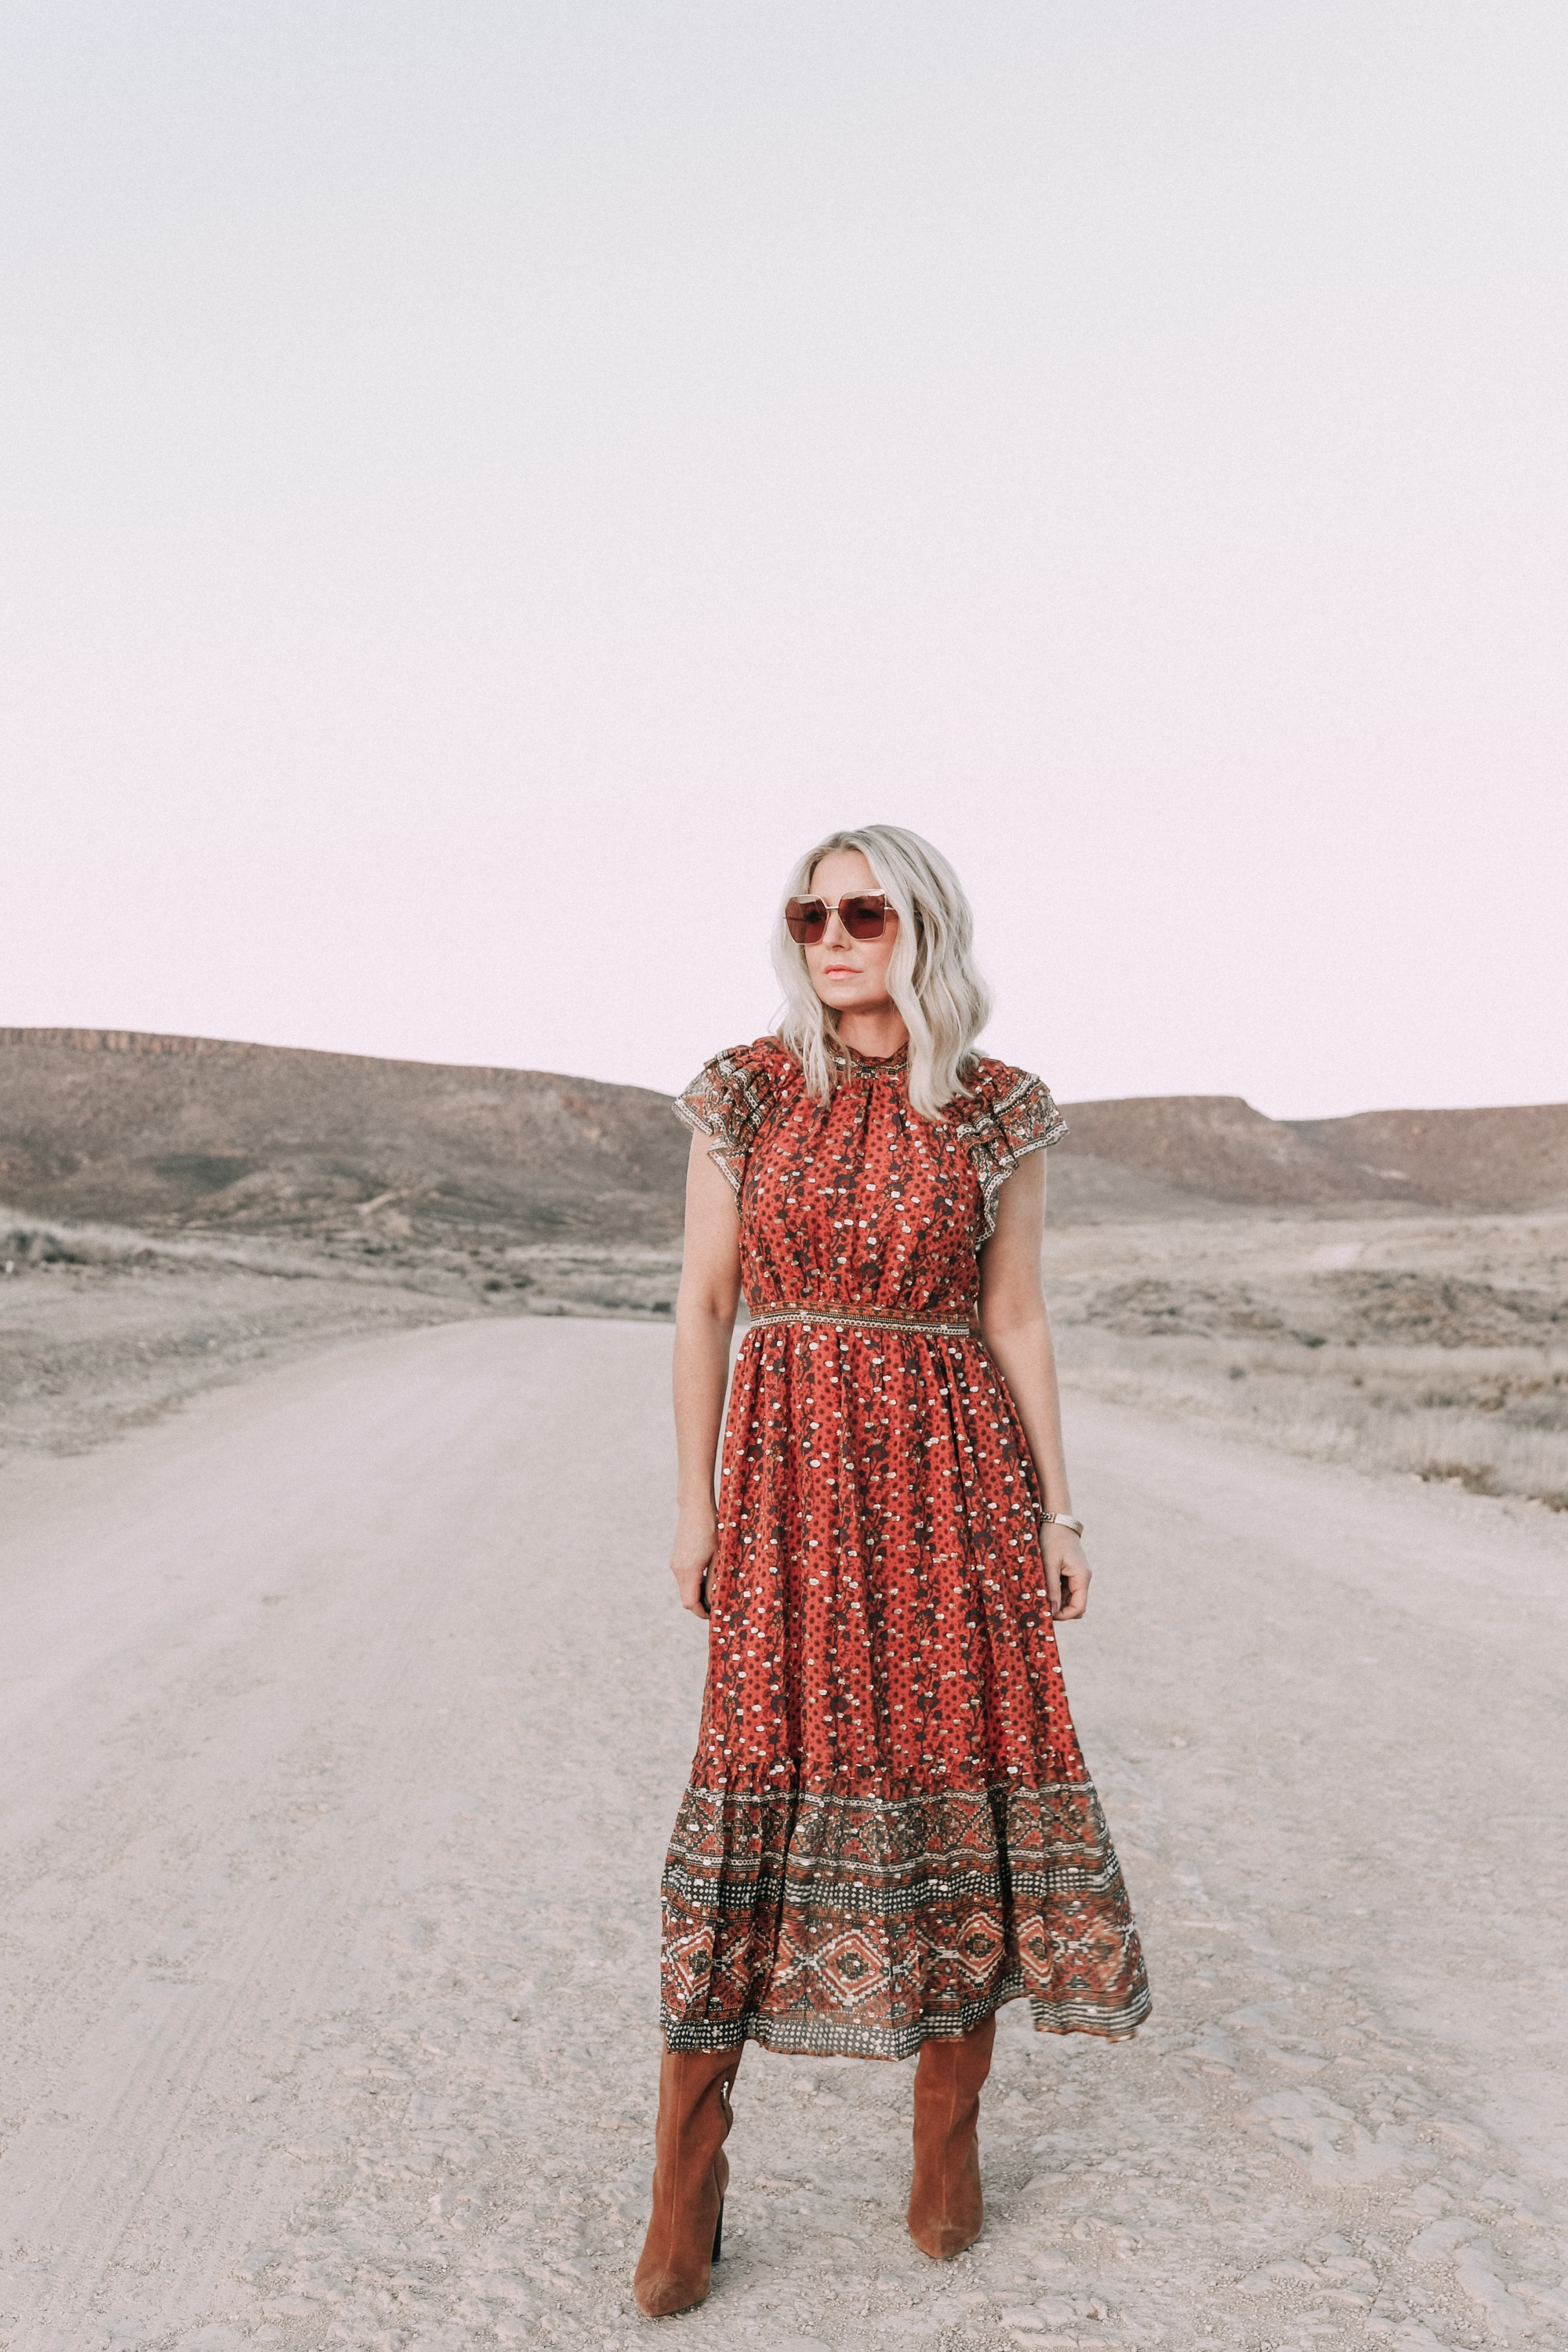 Ulla Johnson Dress, Fashion Blogger Erin Busbee of BusbeeStyle.com wearing the Ulla Johnson Alistair Dress with brown suede boots at Cibolo Creek Ranch in Texas